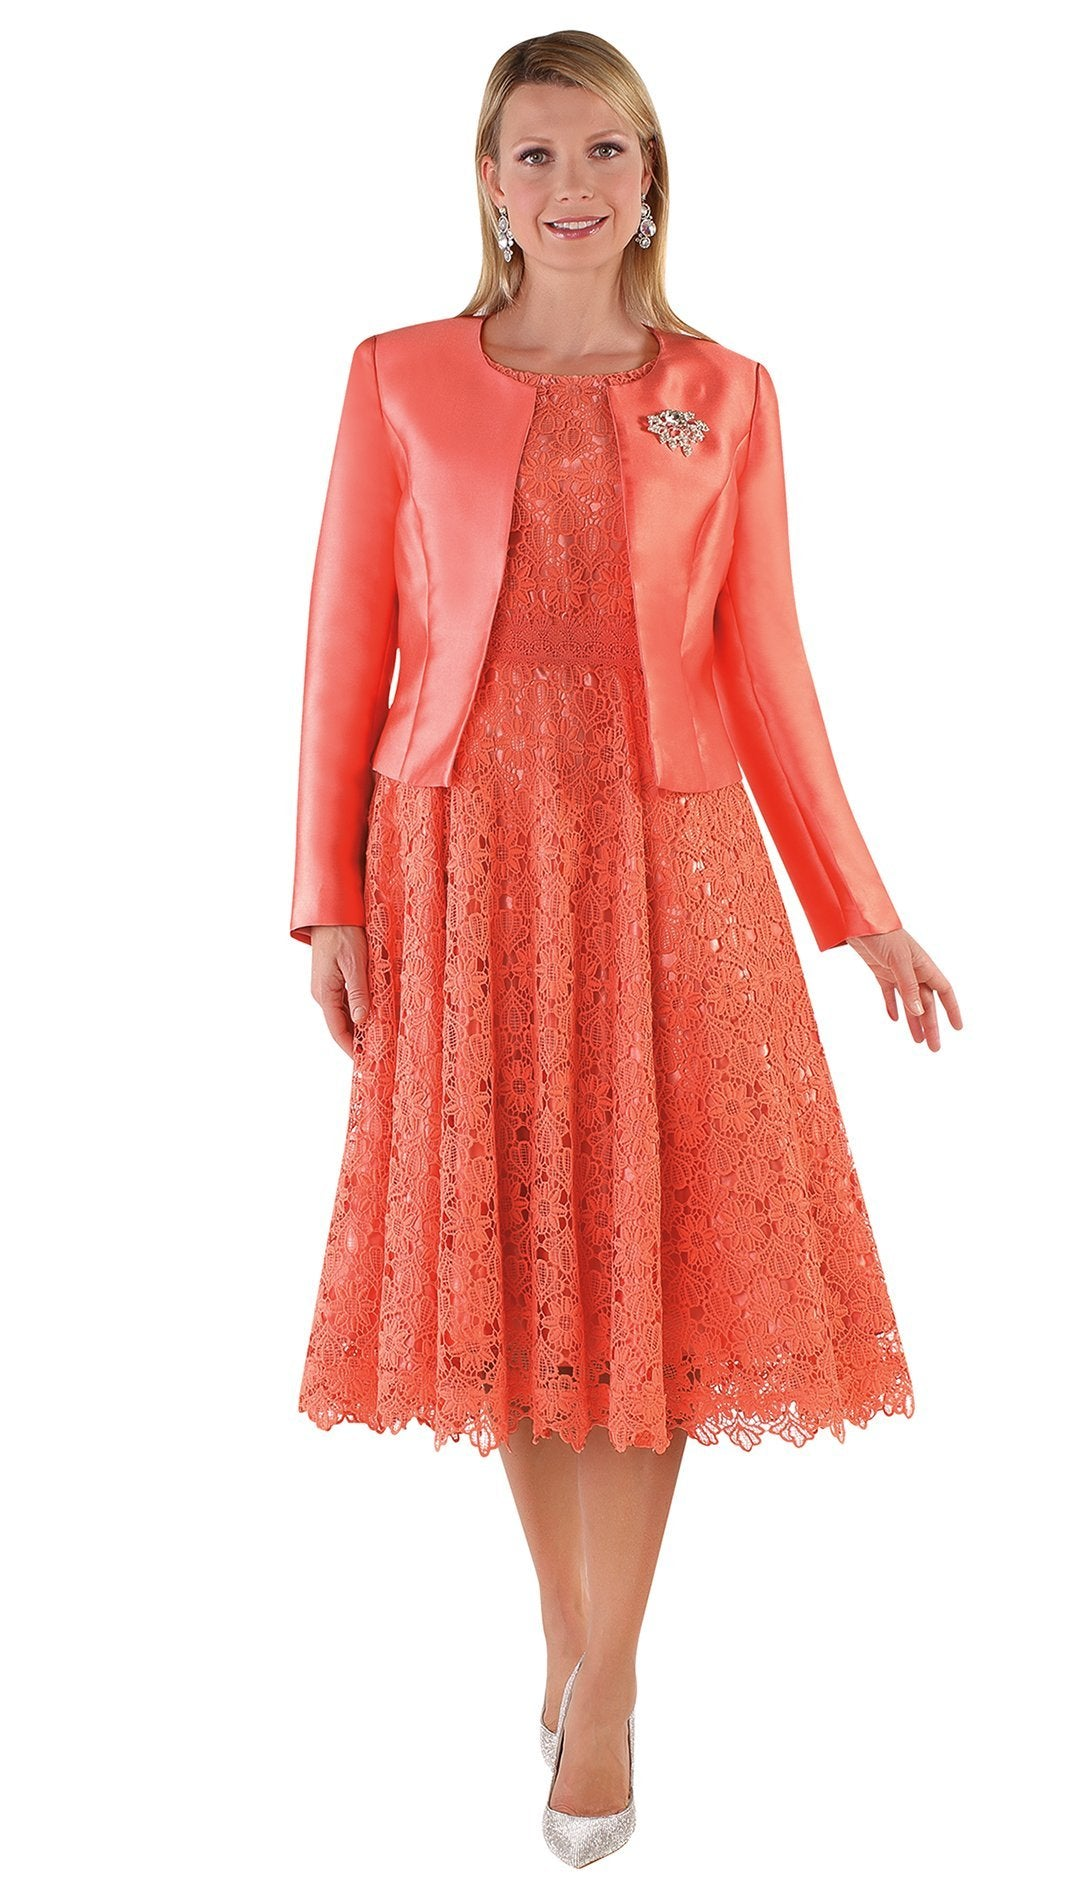 Tally Taylor Dress 4529-Salmon - Church Suits For Less